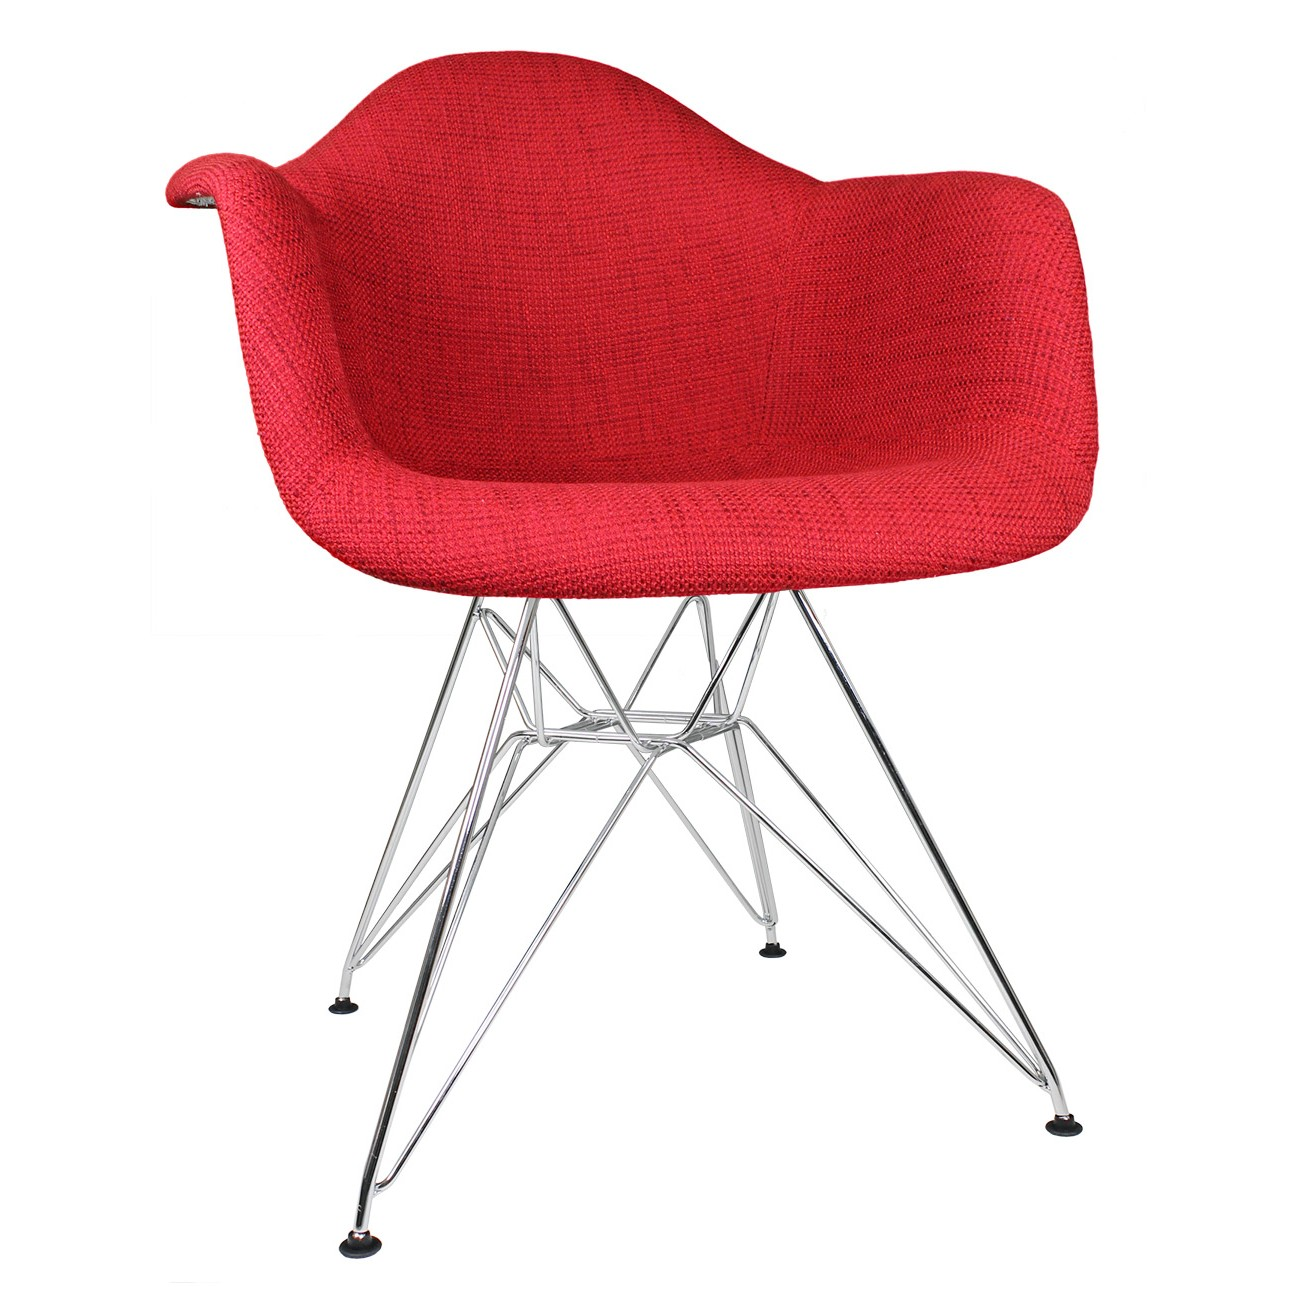 Vibrant Red Woven Fabric Upholstered Eames Style Accent